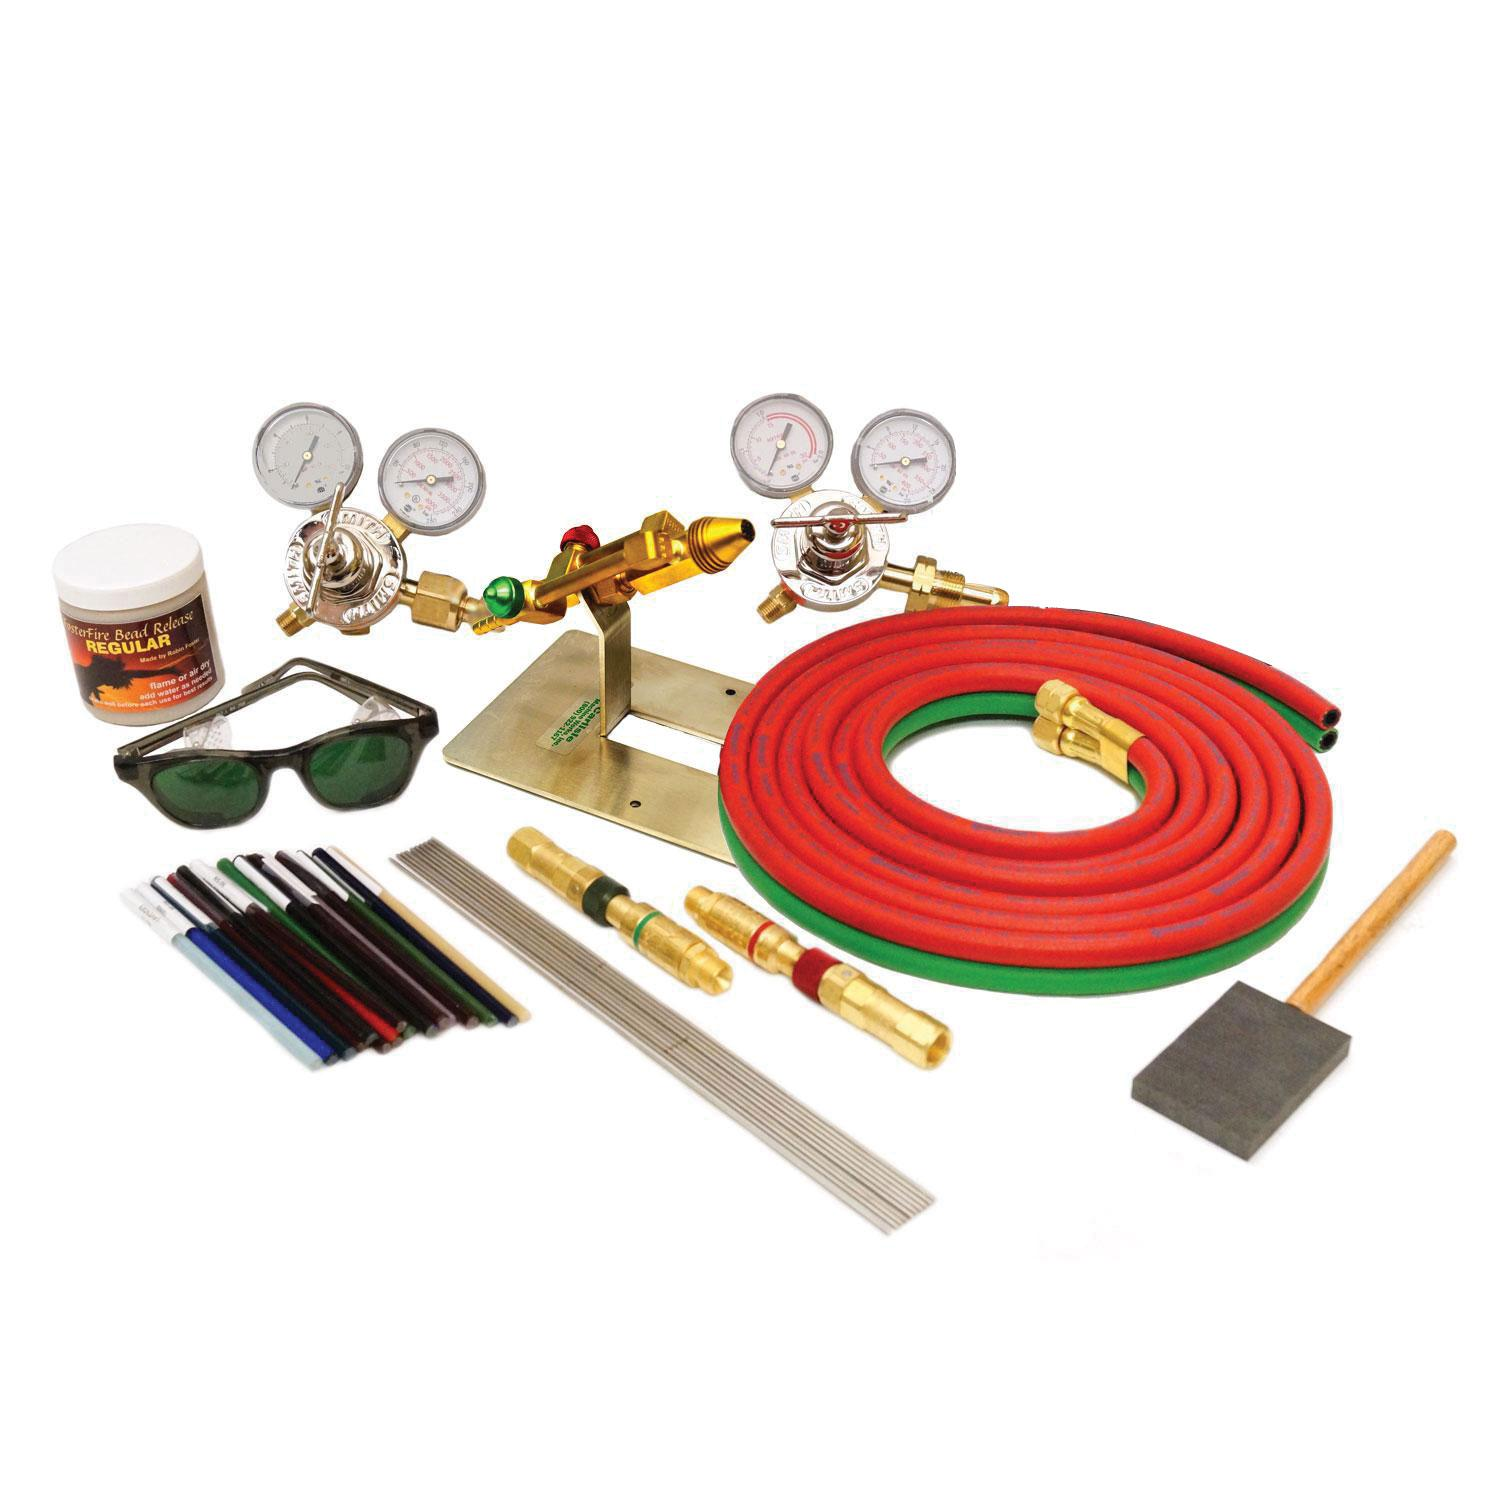 Borosilicate Bead Making Kit